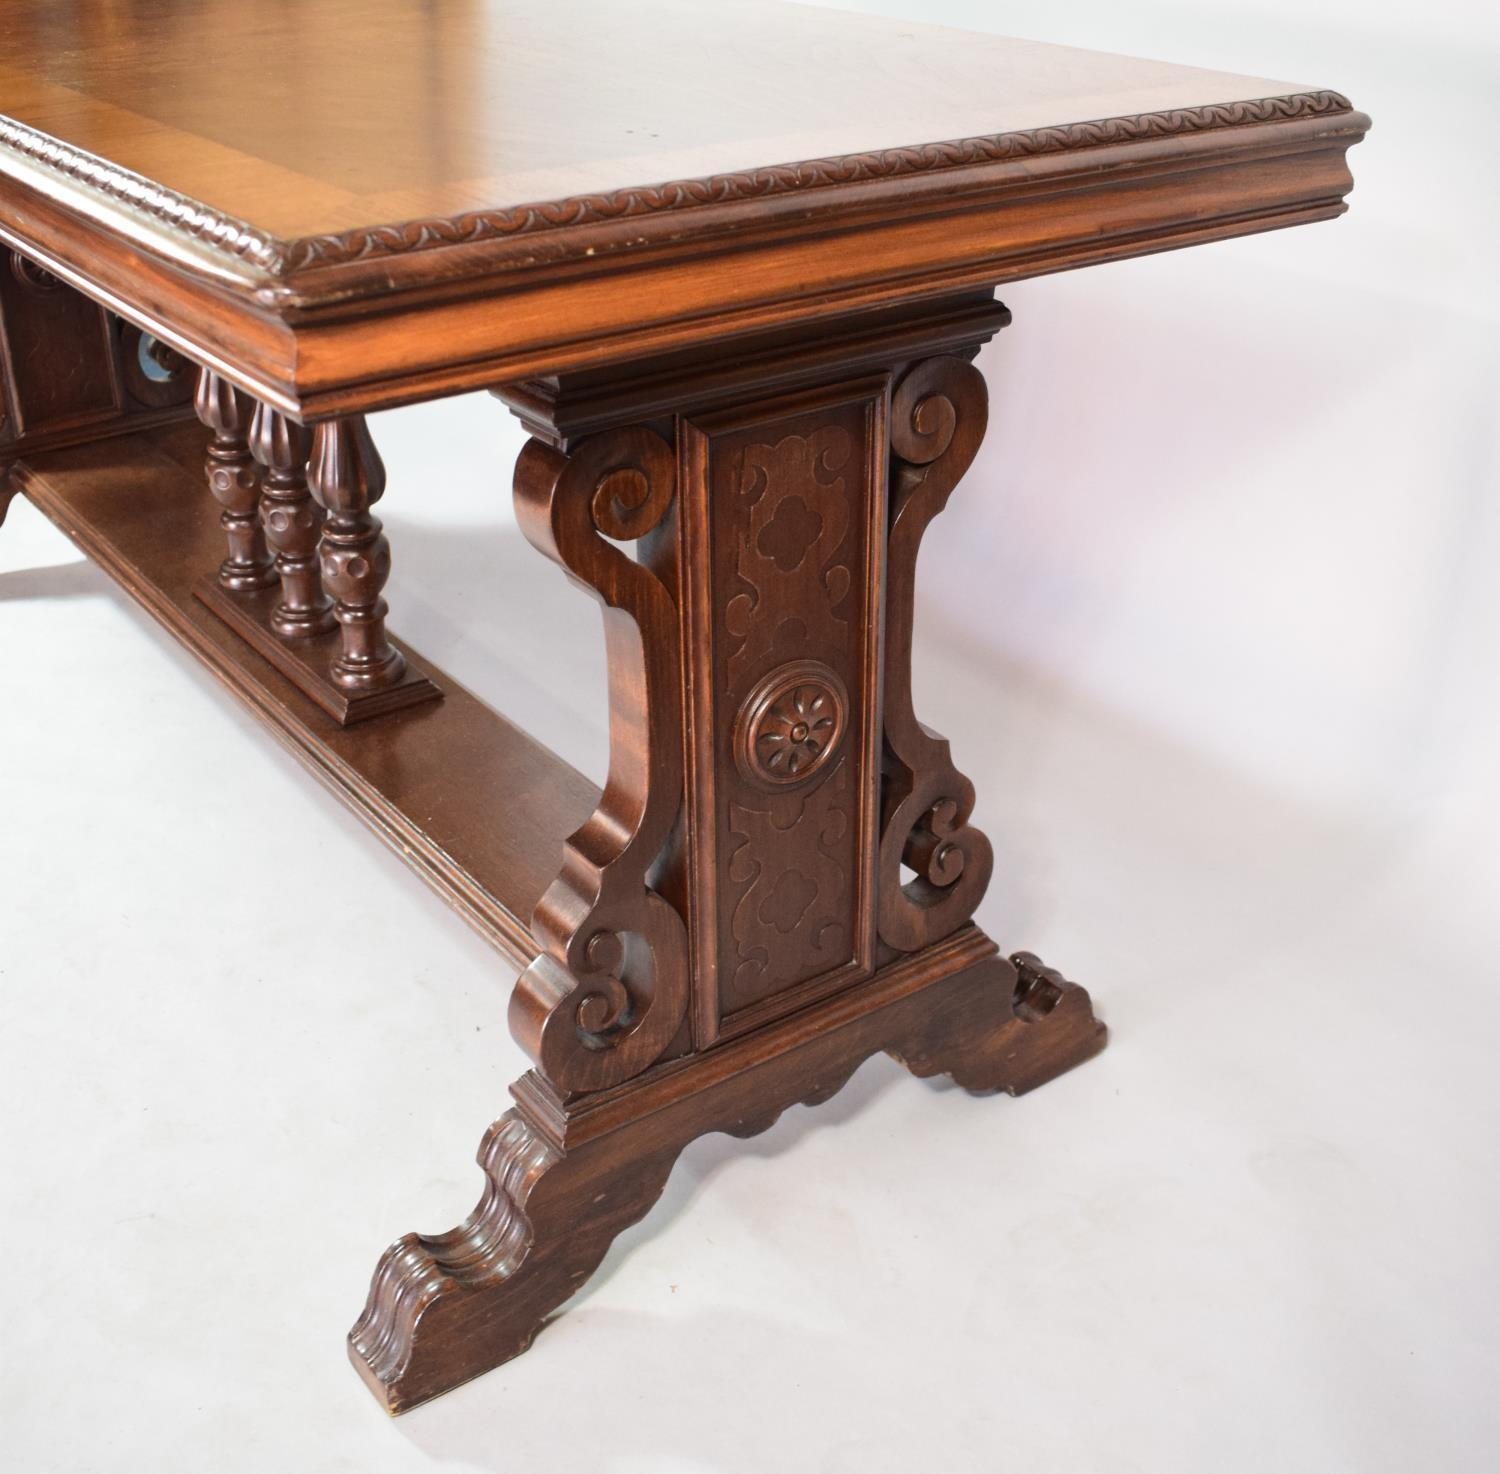 Lot 28 - A Reproduction Regency Mahogany Library Table with Carved Border and Central Tri Spindle Vase